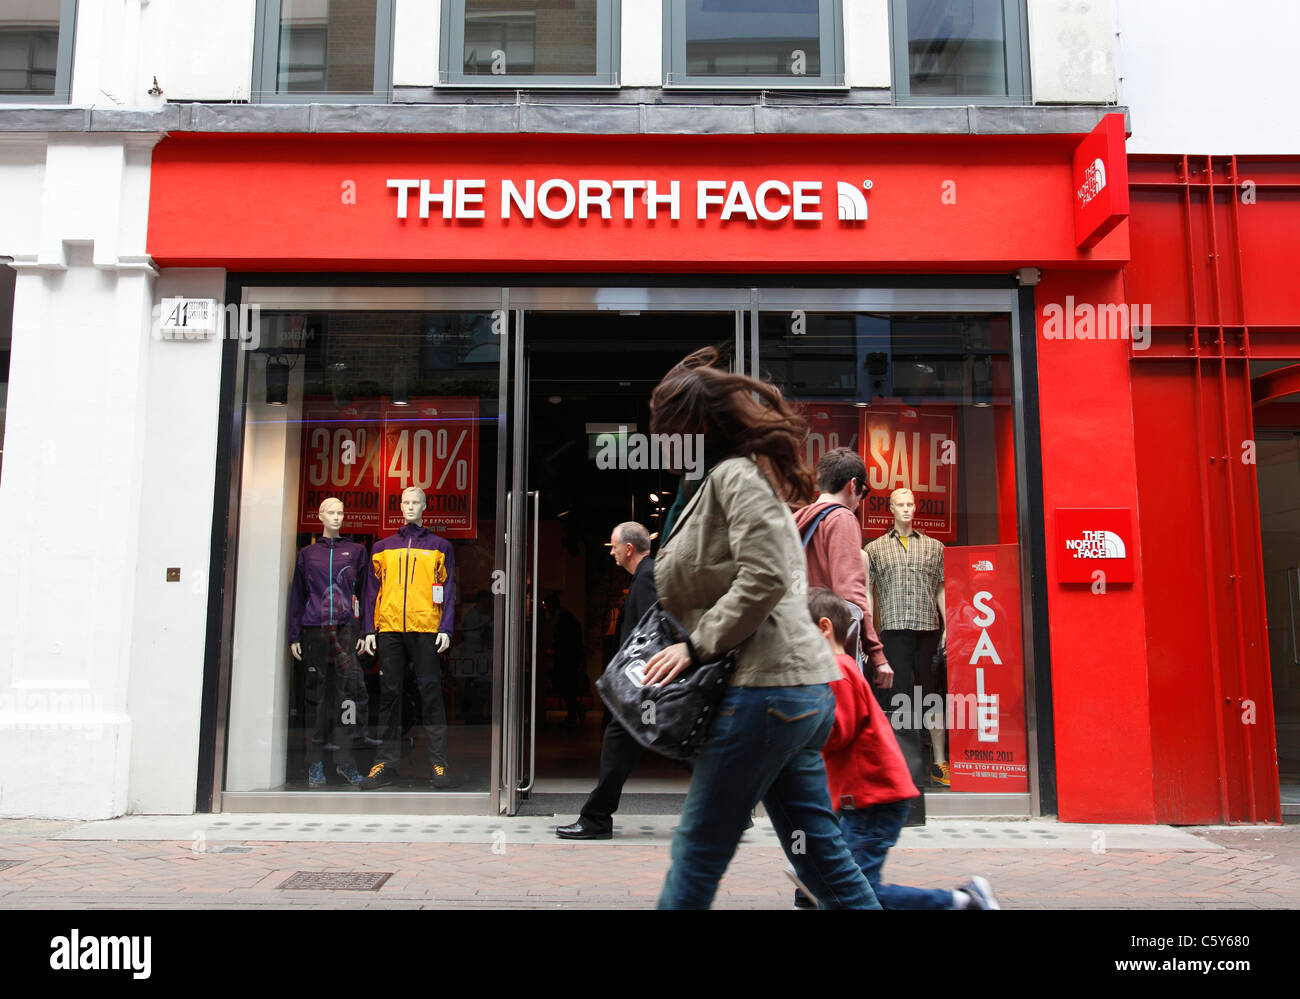 North face in store coupons